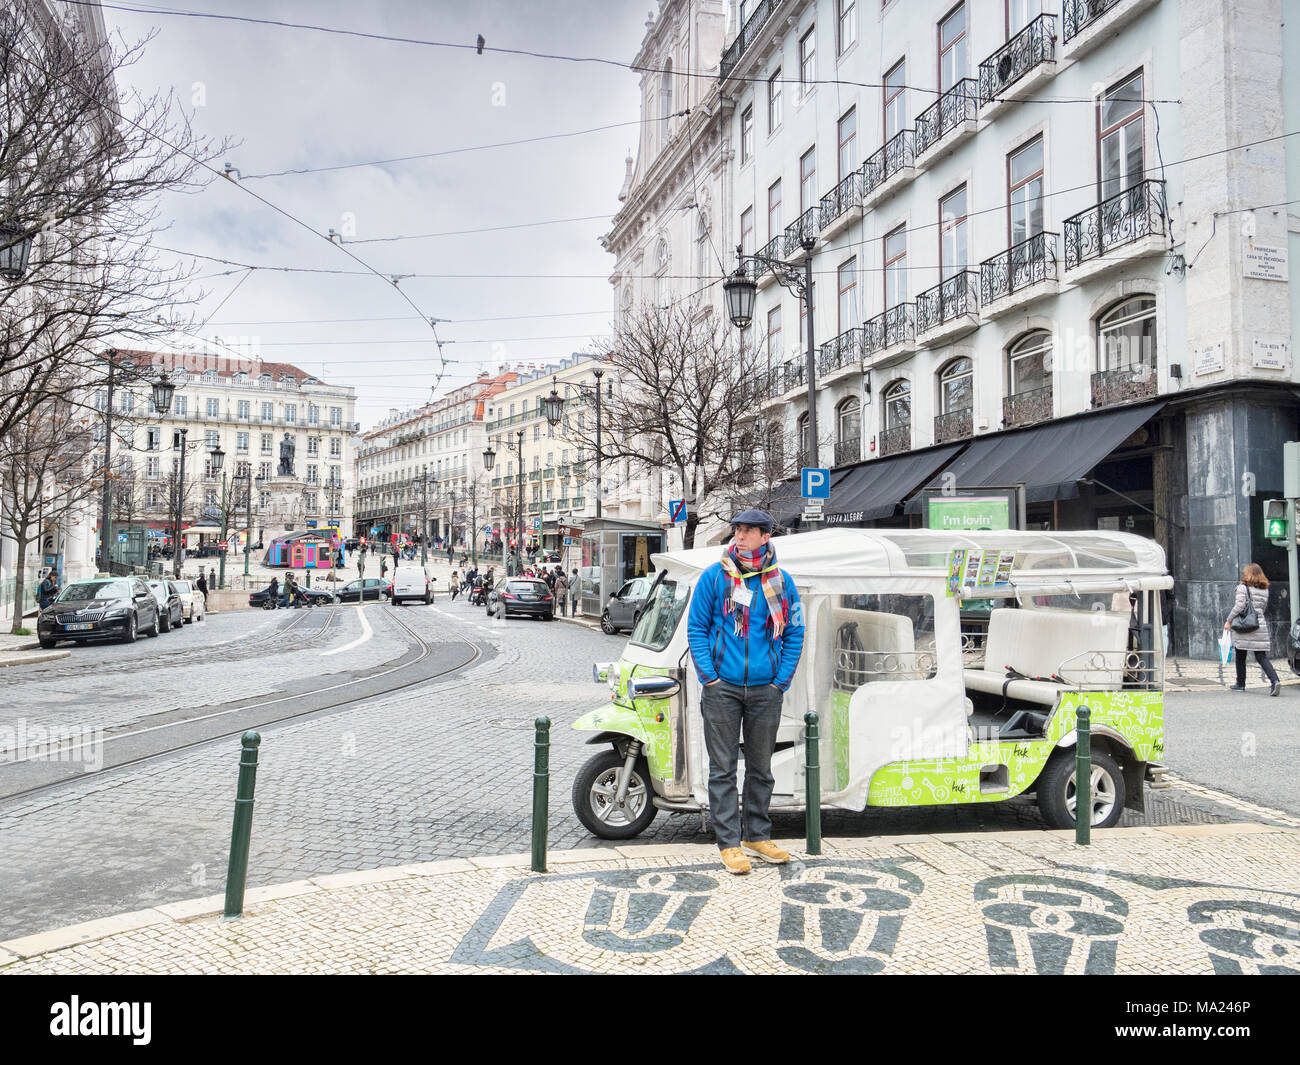 7 March 2018: Lisbon, Portugal - Tuk tuk driver wrappede up warm,  waiting for business on the streets of Lisbon in early spring. - Stock Image